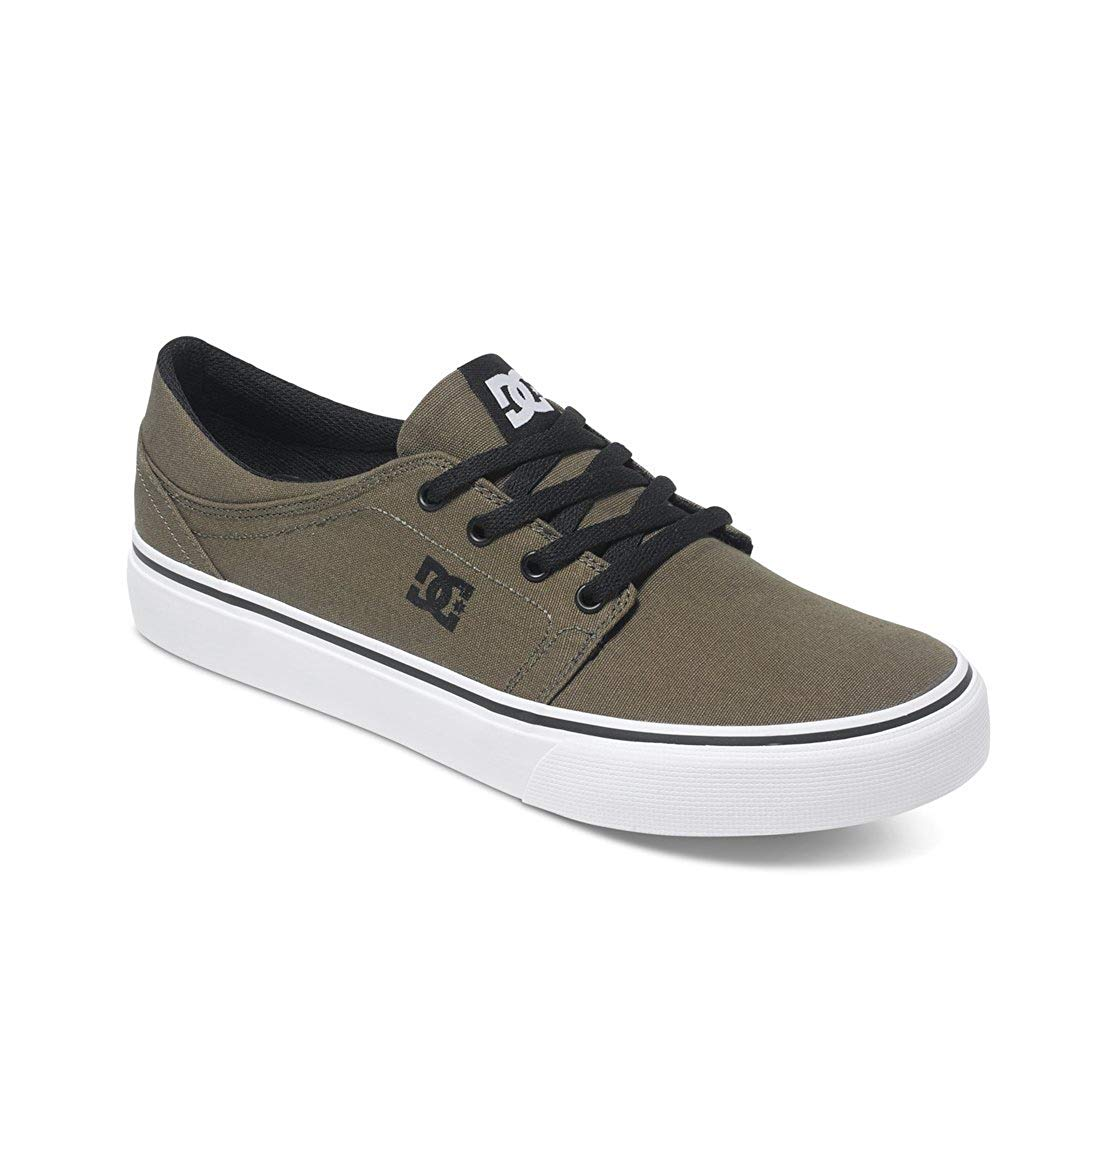 Cheap Dc Shoes Price, find Dc Shoes